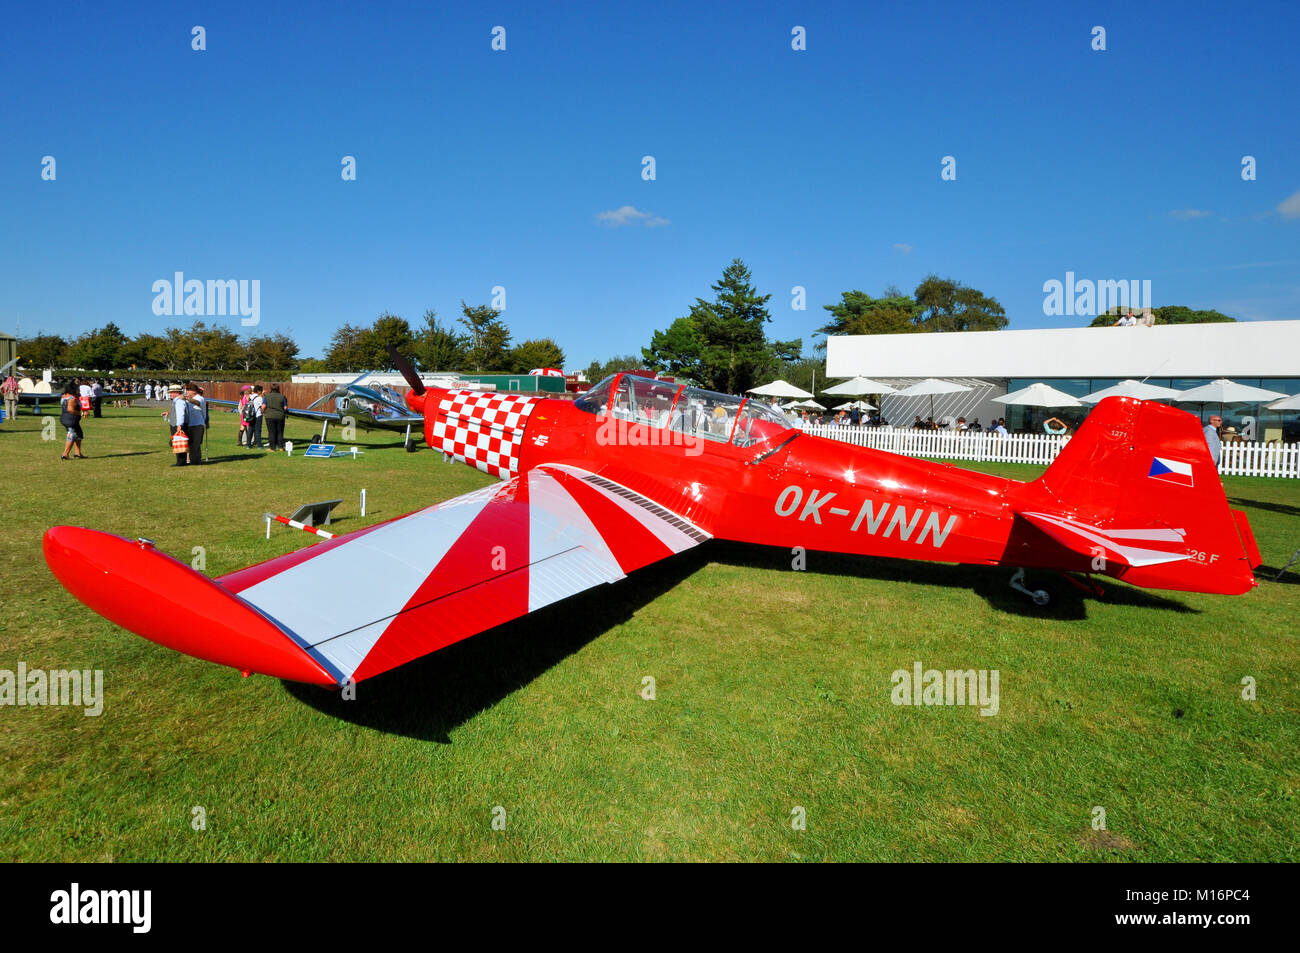 Zlin 526F OK-NNN in the Freddie March Spirit of Aviation Goodwood Revival 2016. Owned by Petr Kejdus - Stock Image